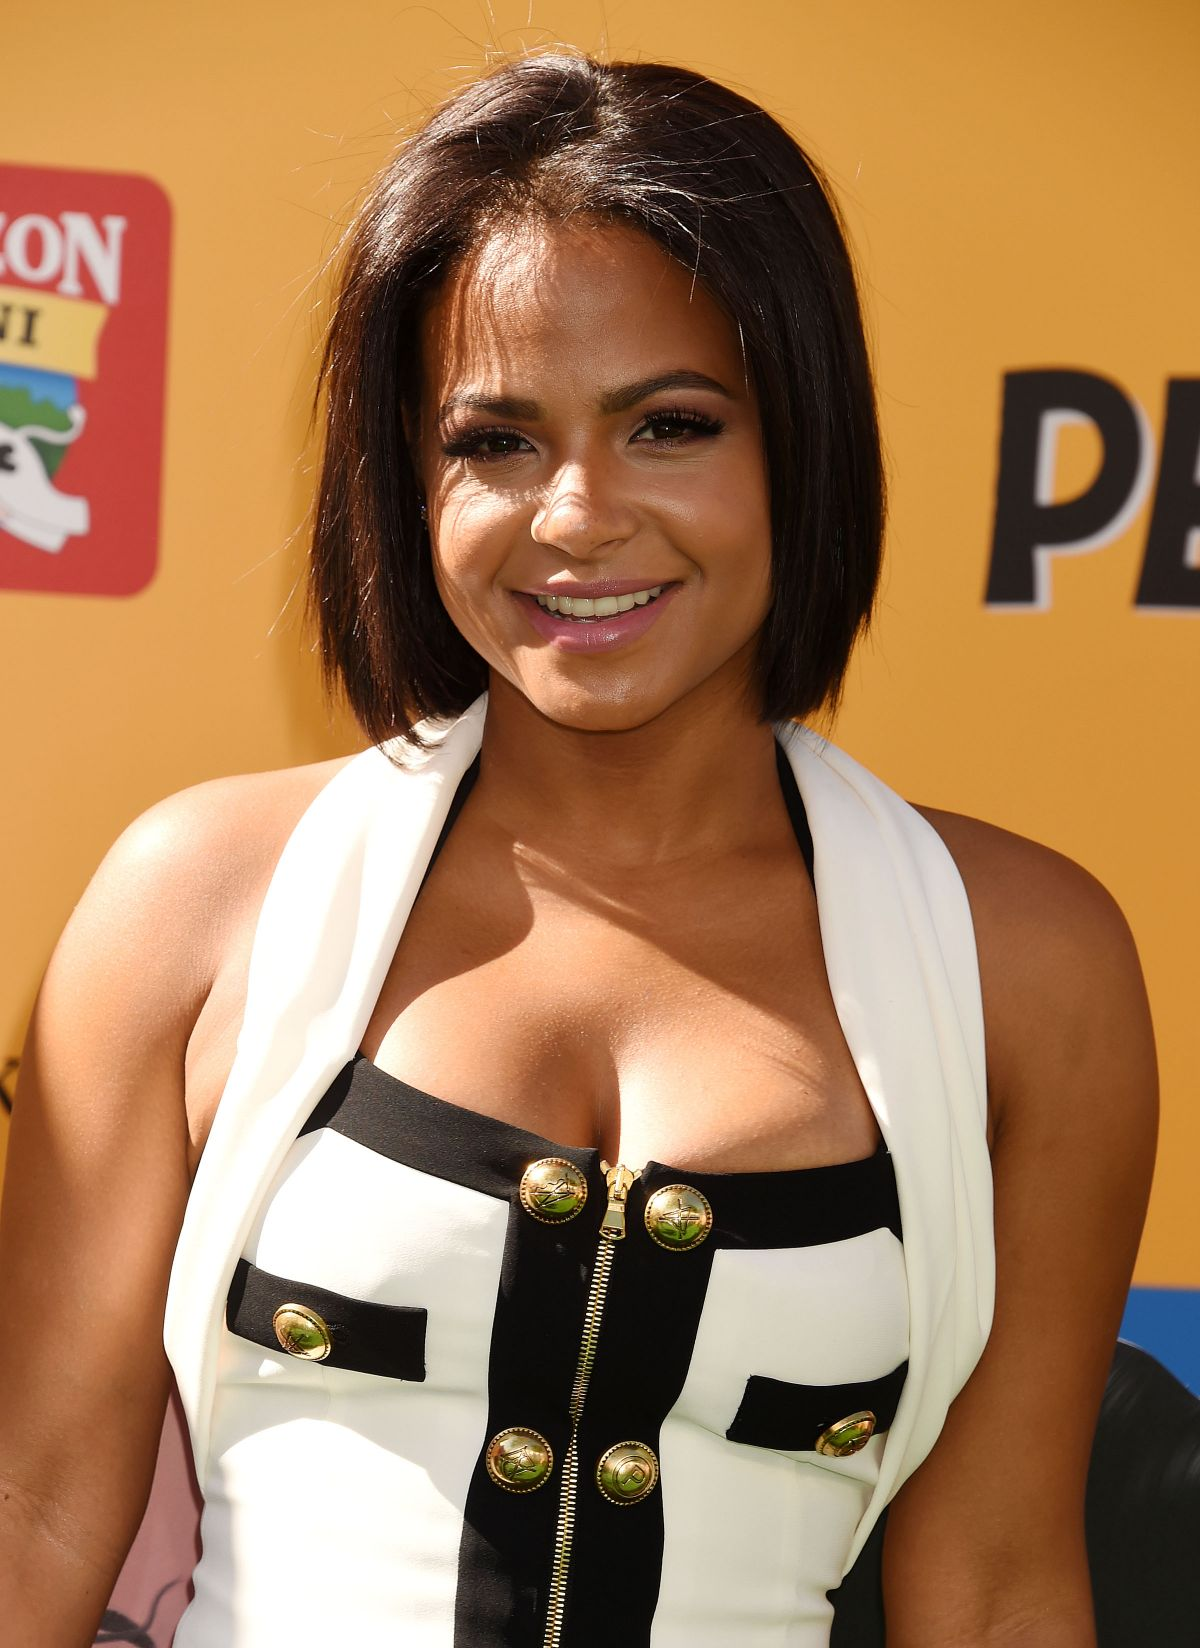 CHRISTINA MILIAN at The Peanuts Movie Premiere in Westwood 11/01/2015